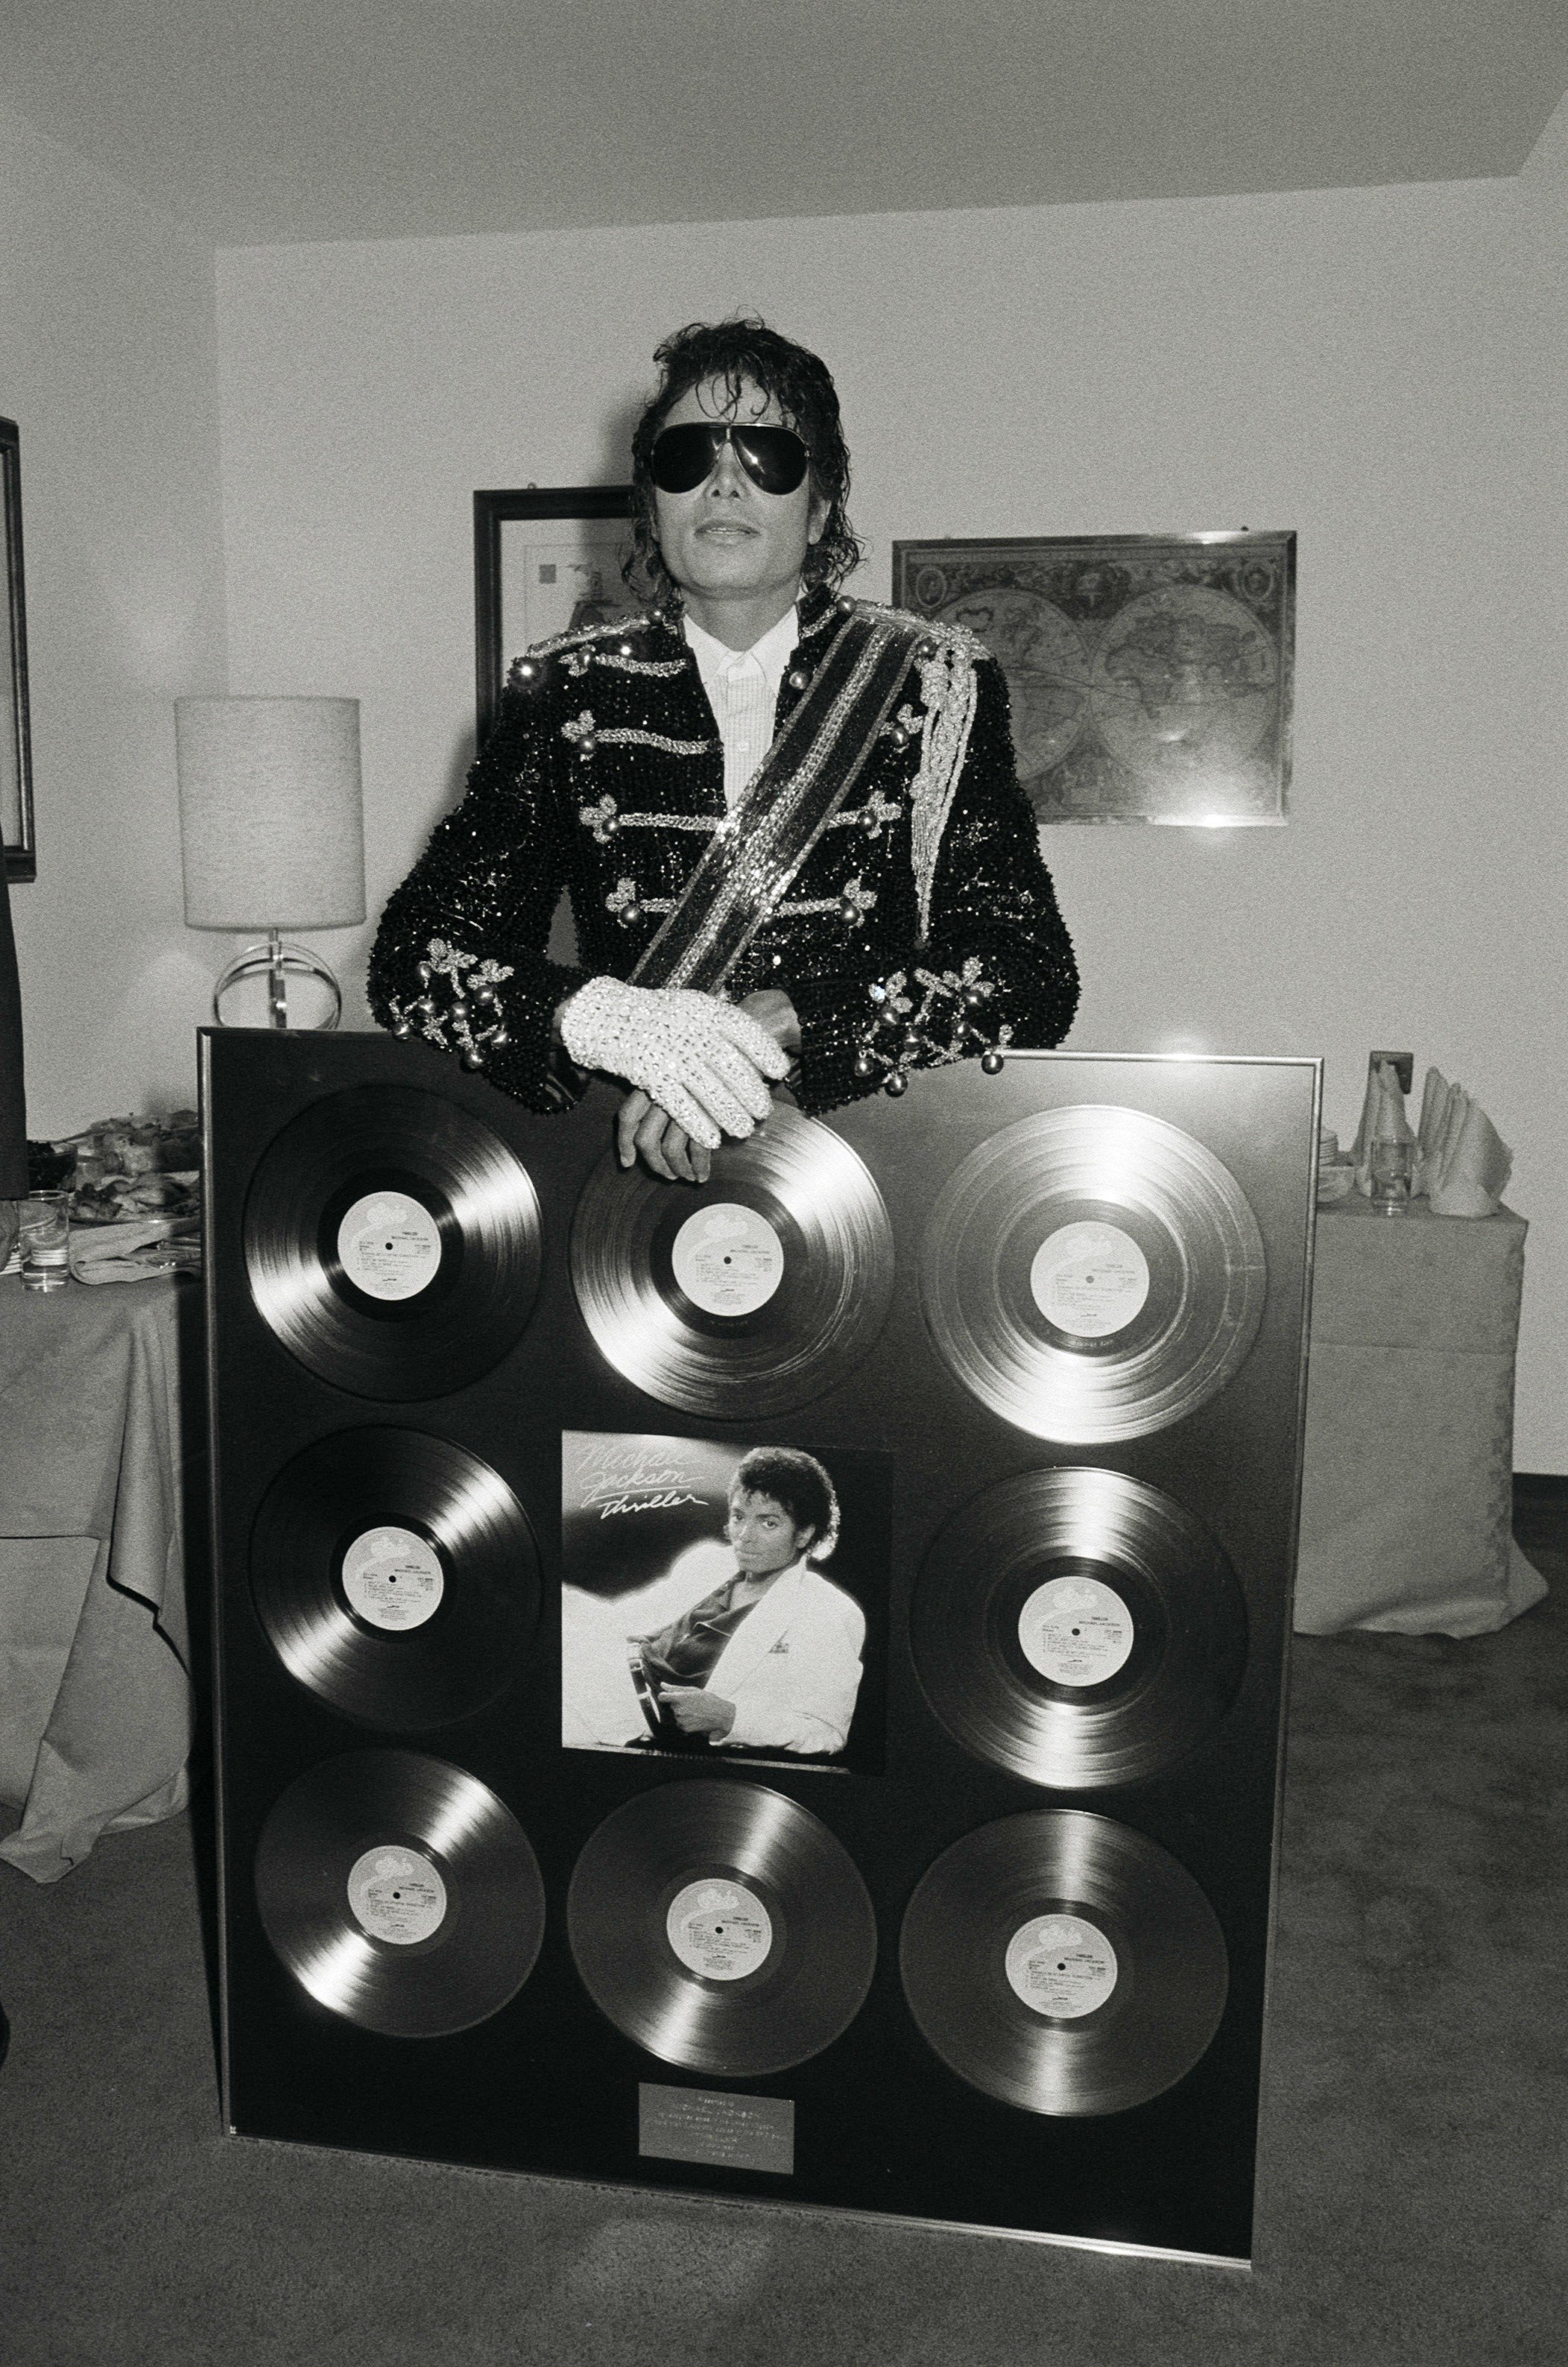 rs 220885 GettyImages 82988412 20 Things You Didn't Know About Michael Jackson